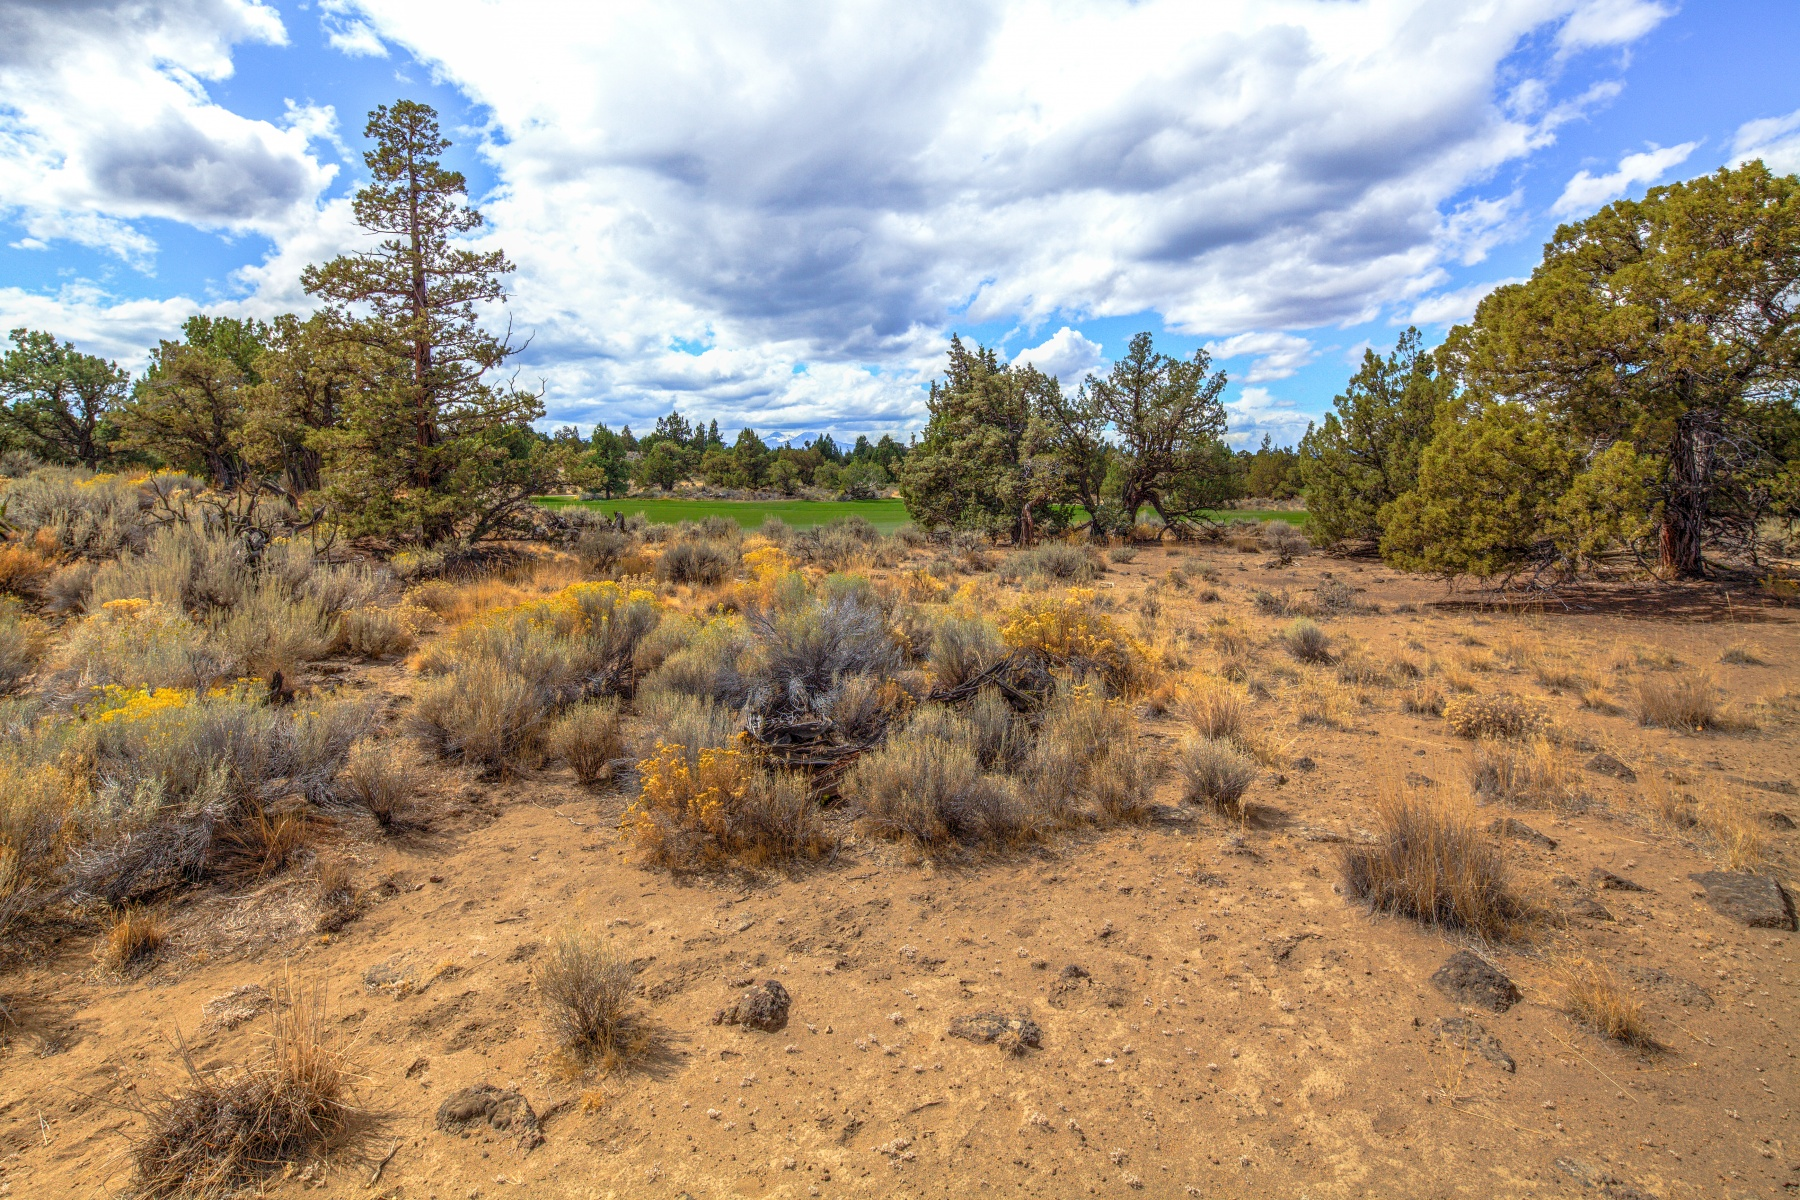 Land for Sale at Pronghorn Estates 65735 Pronghorn Estates Dr Lot 21 Bend, Oregon, 97701 United States